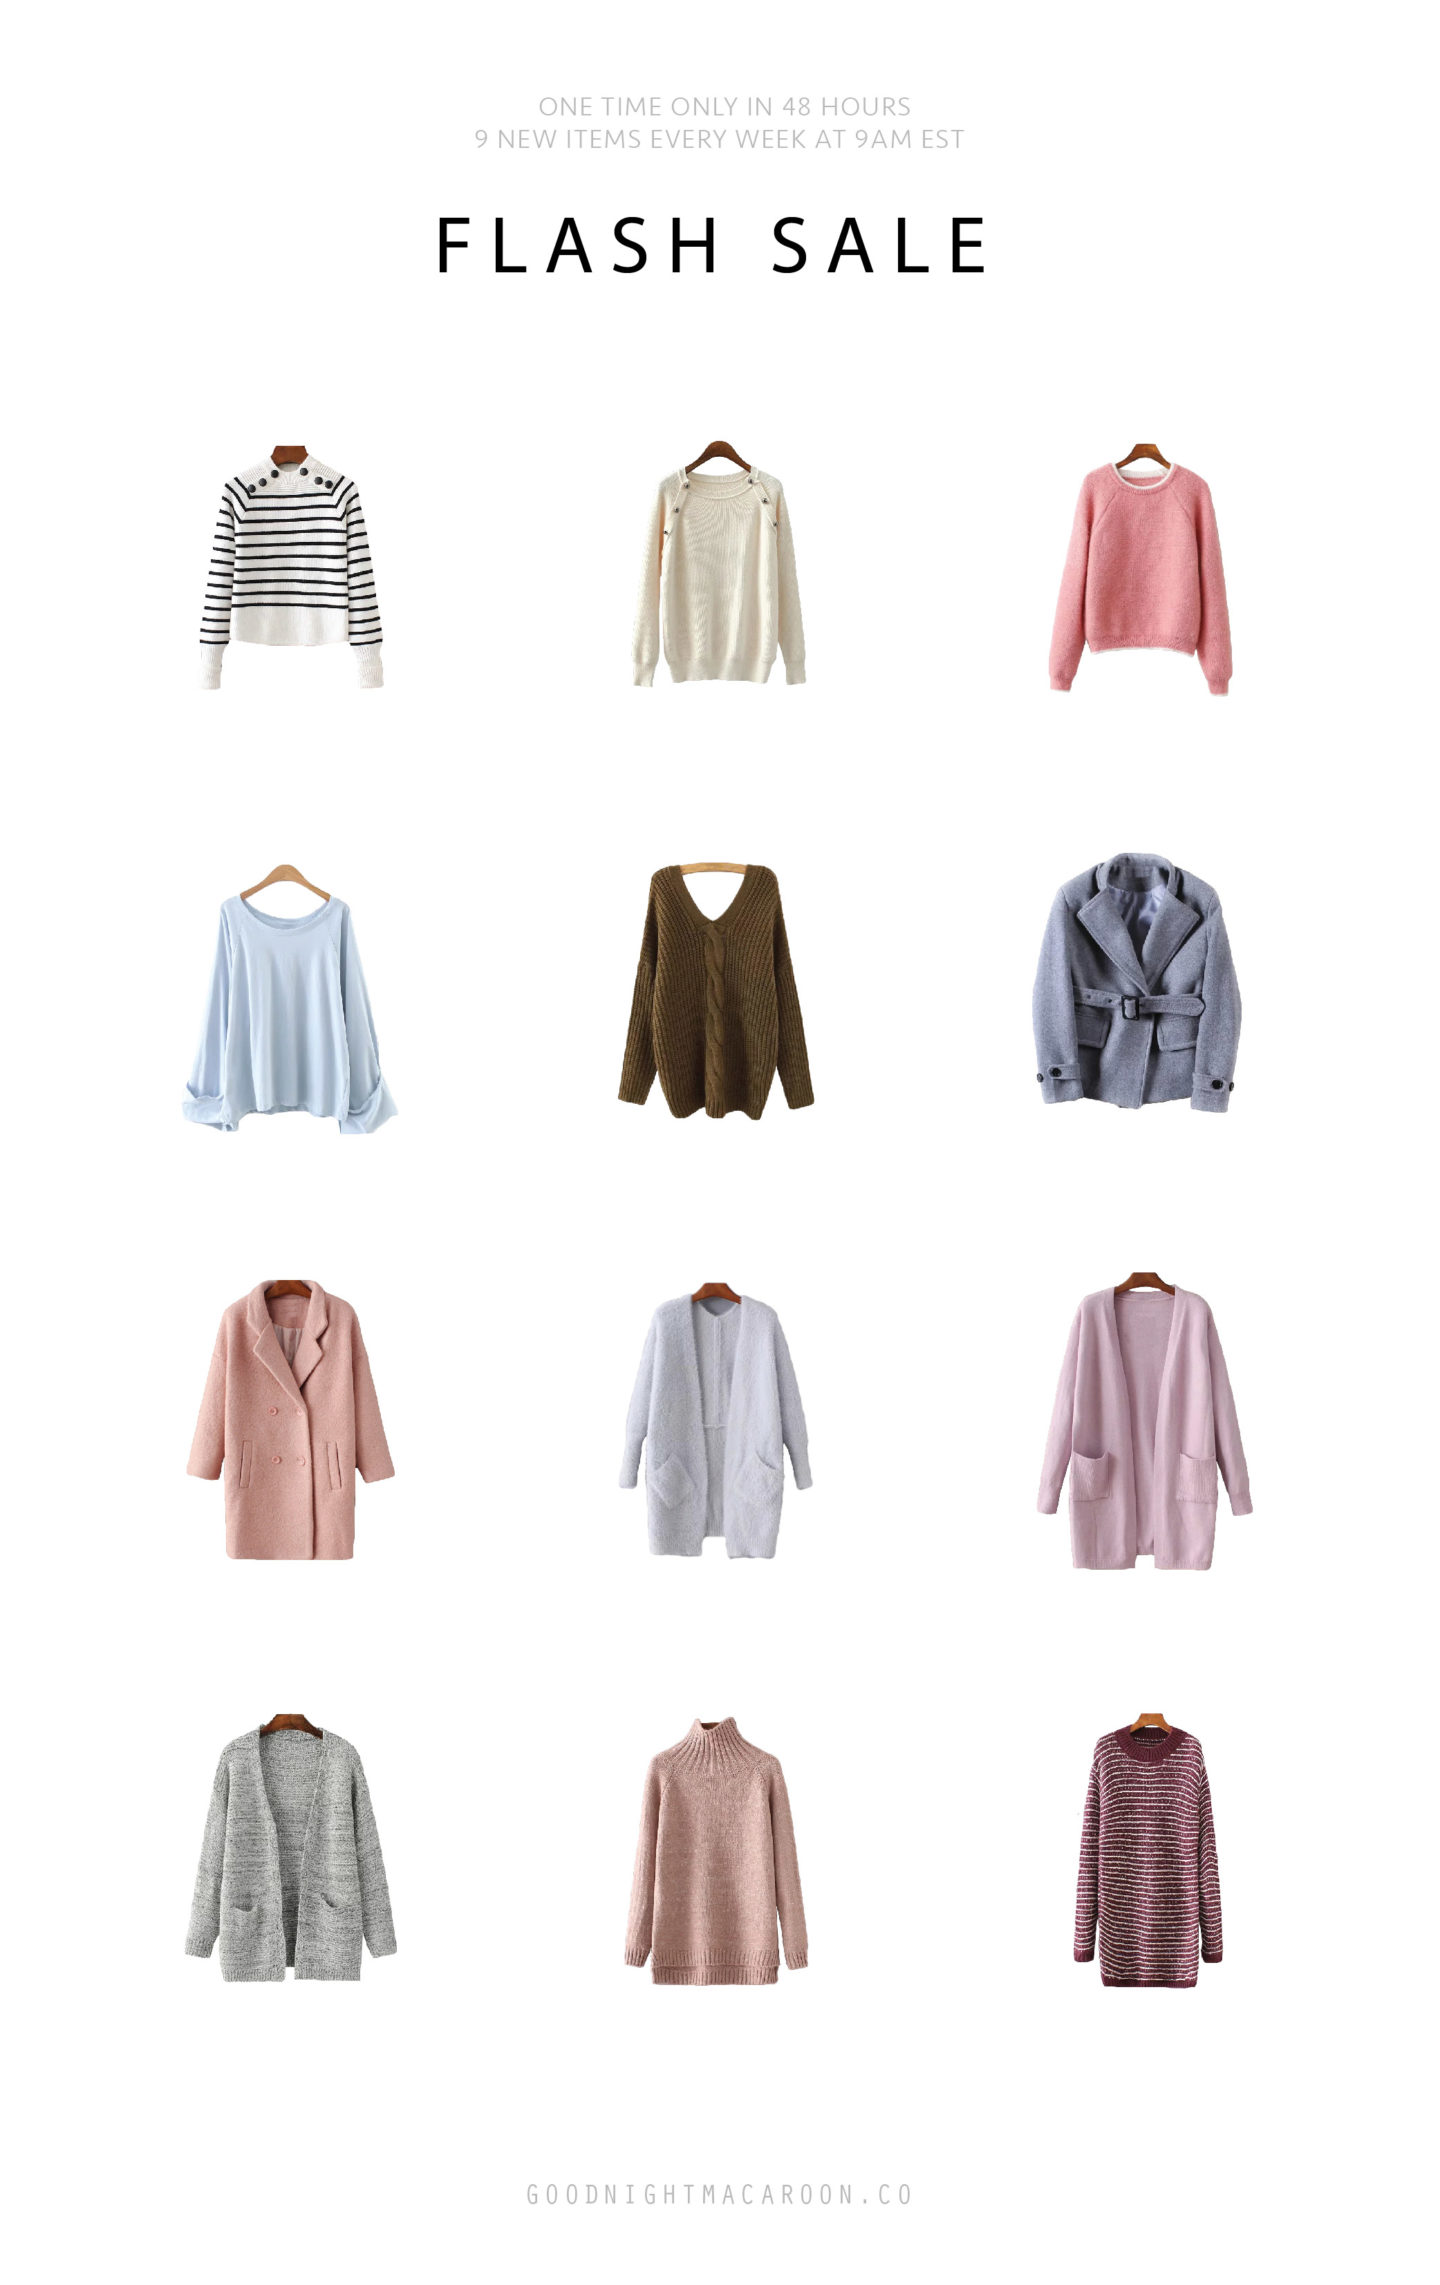 goodnight-macaroon-flash-sale-newsletter 50% off on new arrivals, pink sweater, cardigan, coat, wrap coat, deal, promp